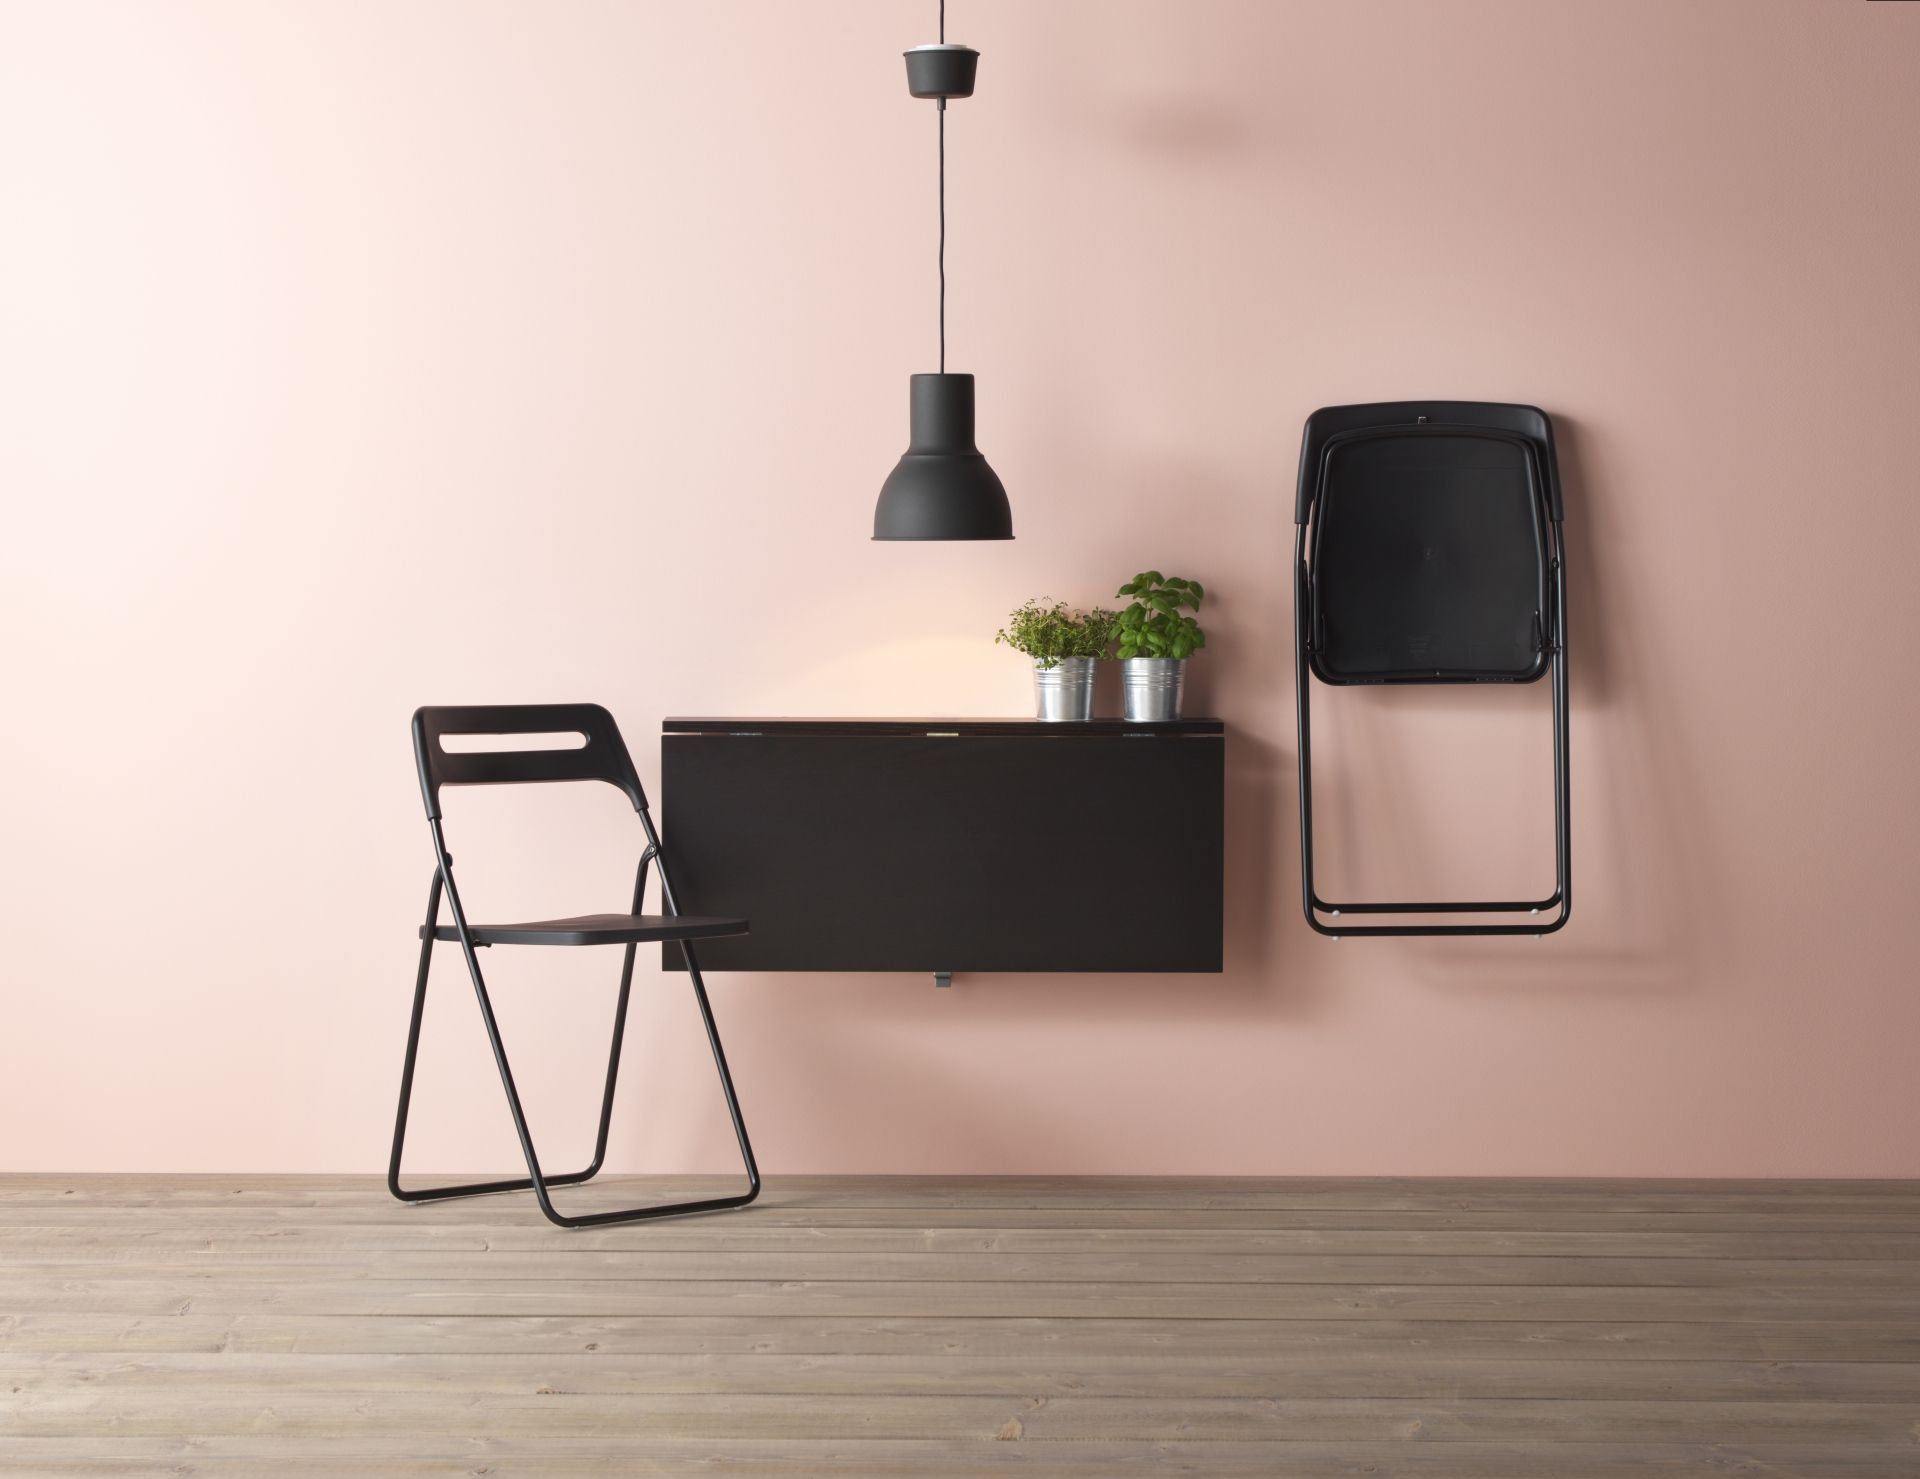 72 best BEST OF: IKEA images on Pinterest | Dining table, Family ...